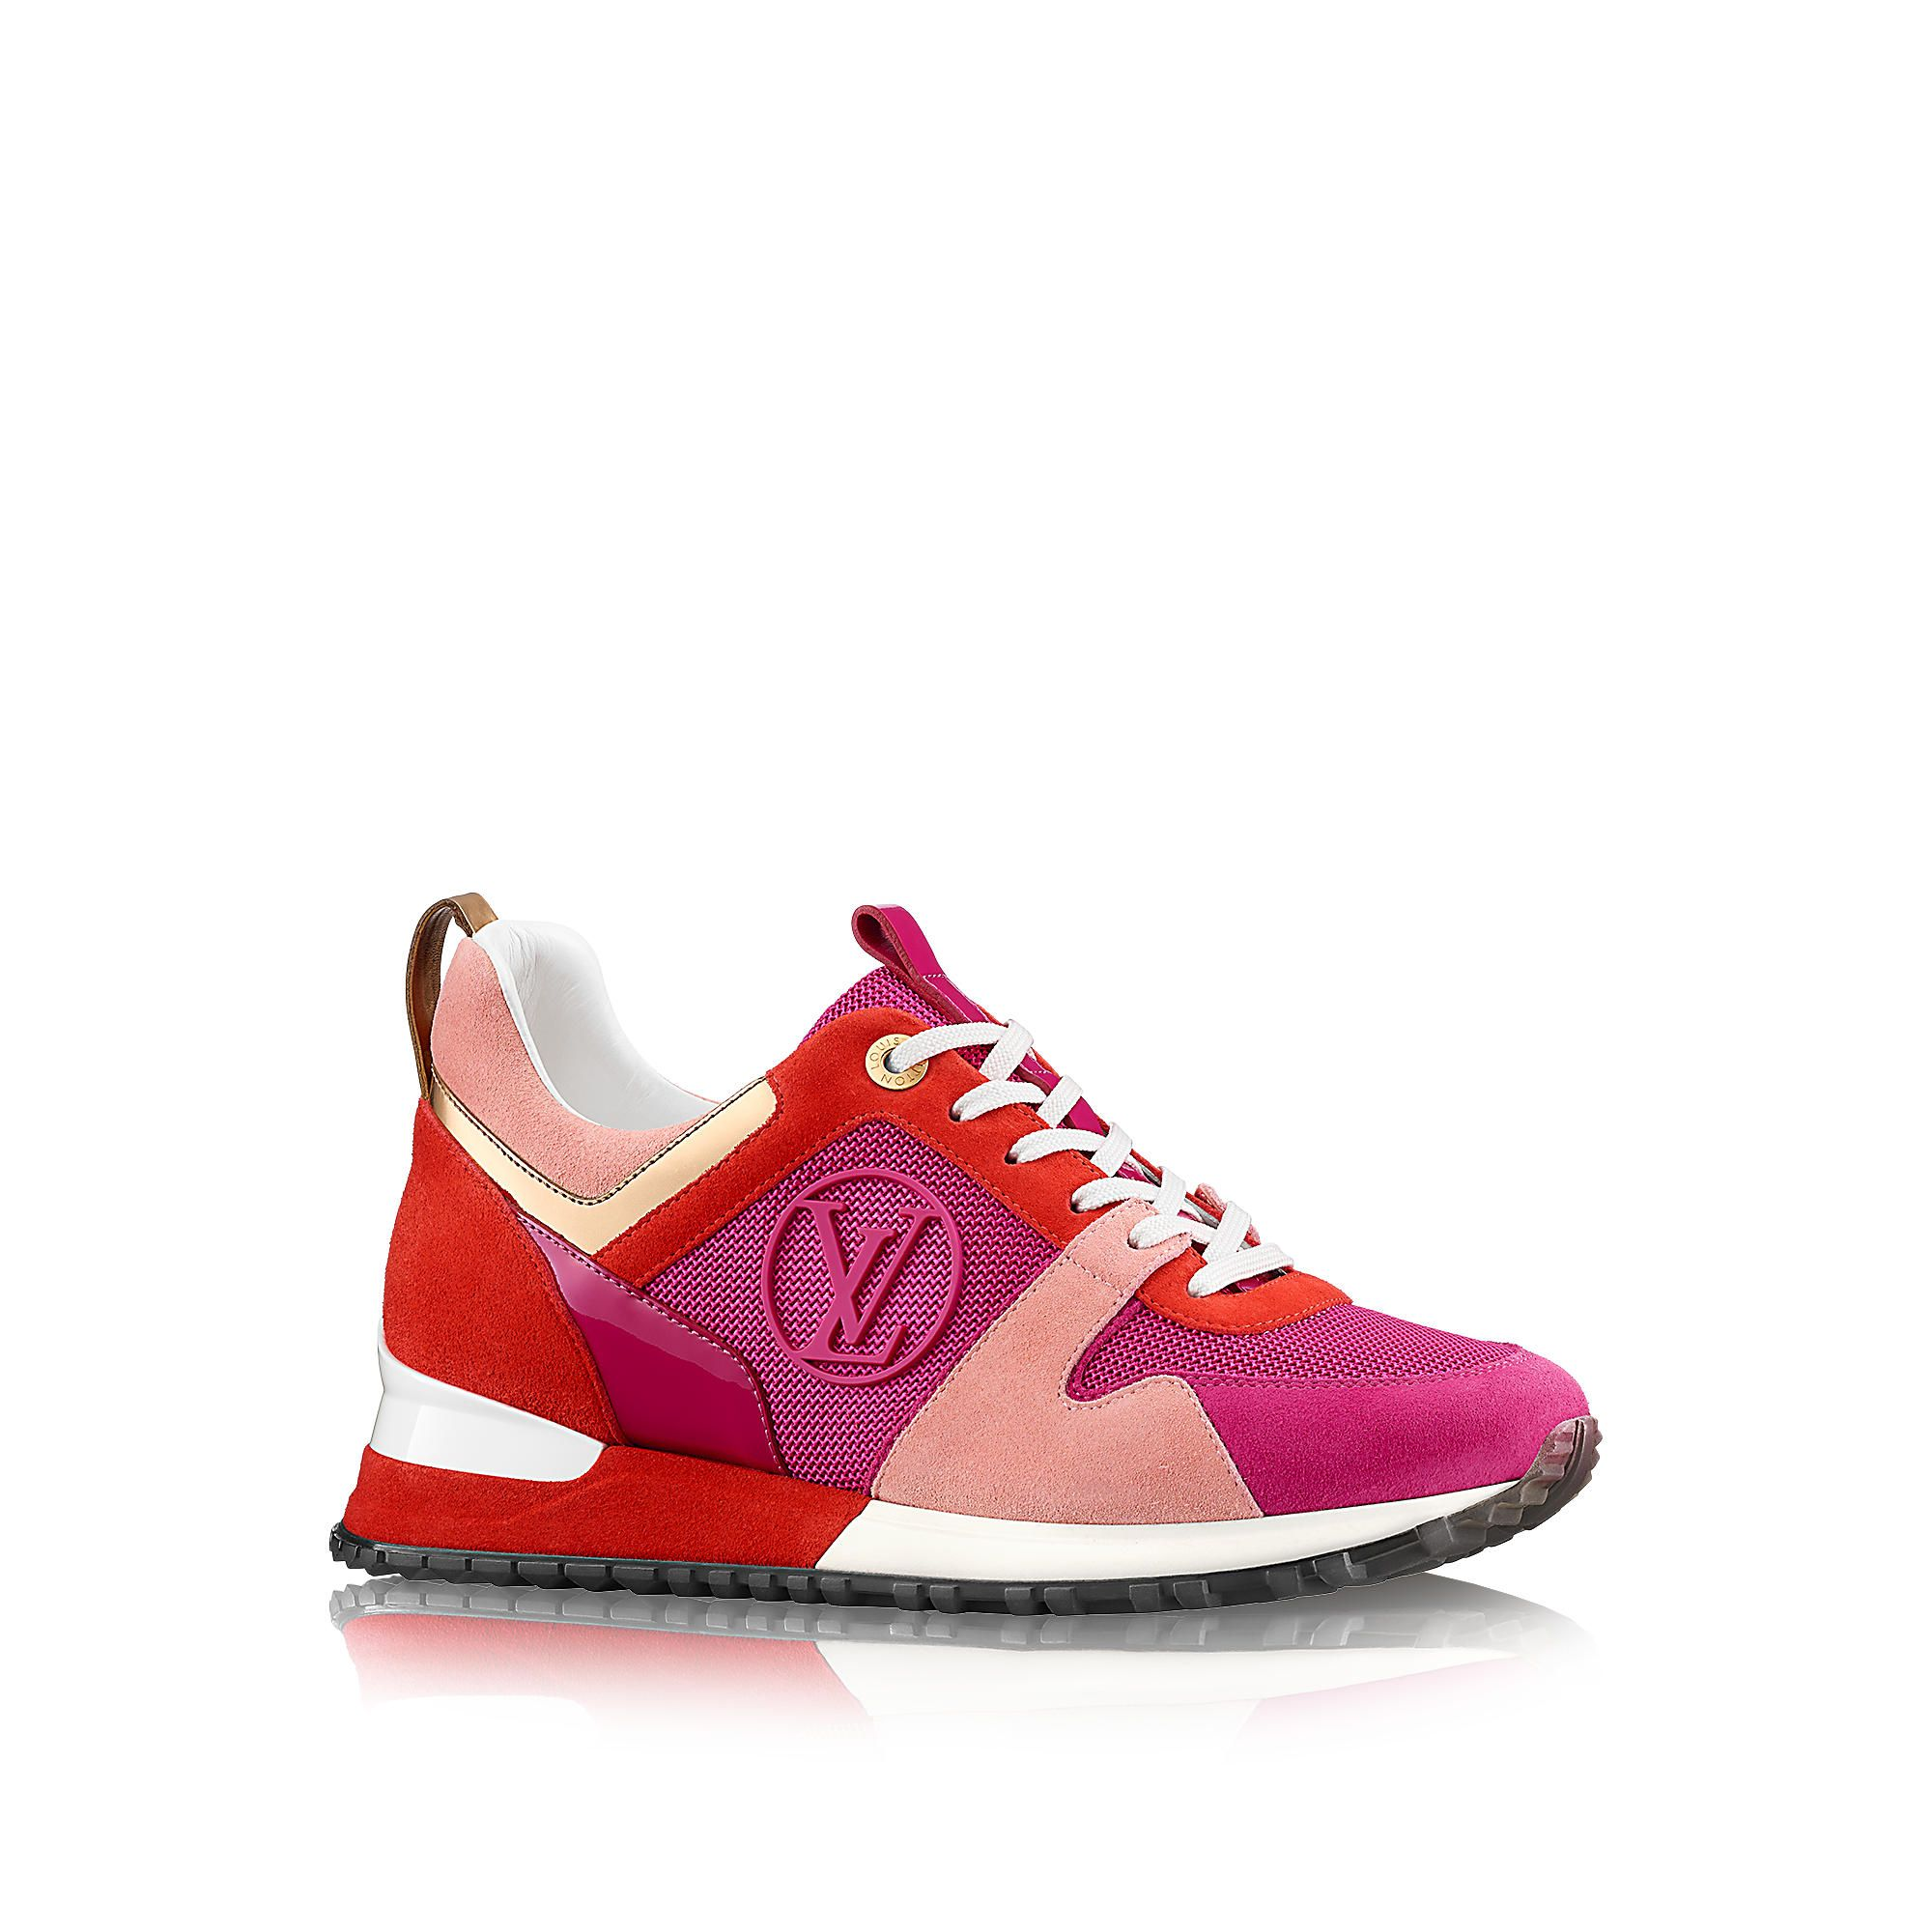 Sneakers louis vuitton femme rouge